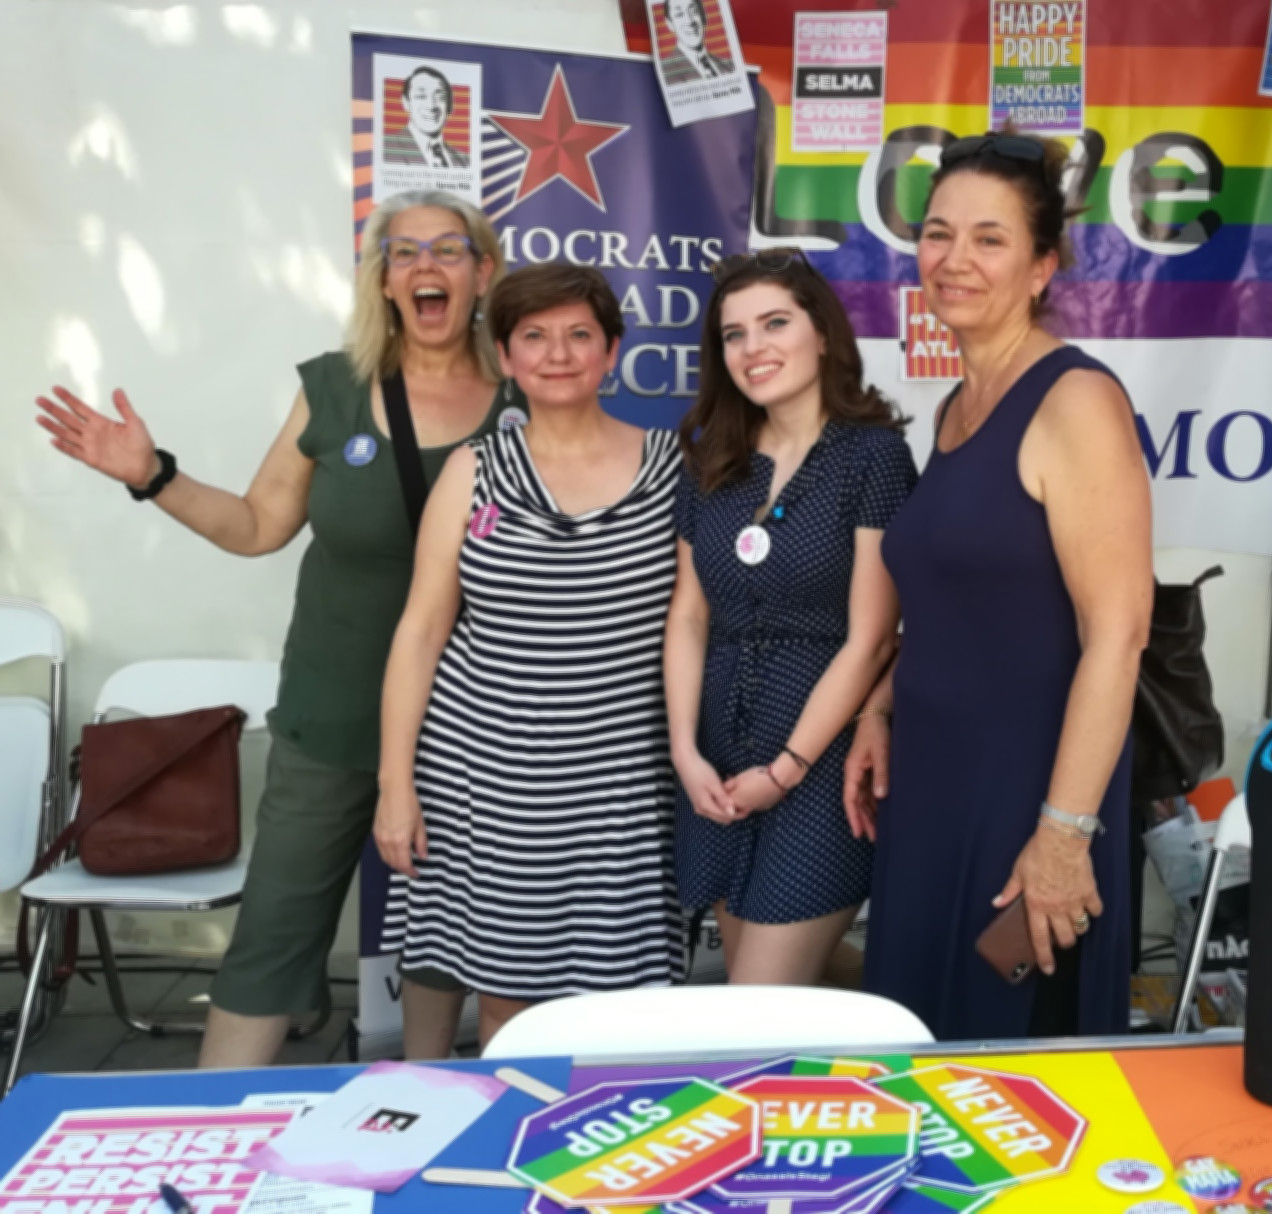 2019_Pride_-_Gals_edited.jpg